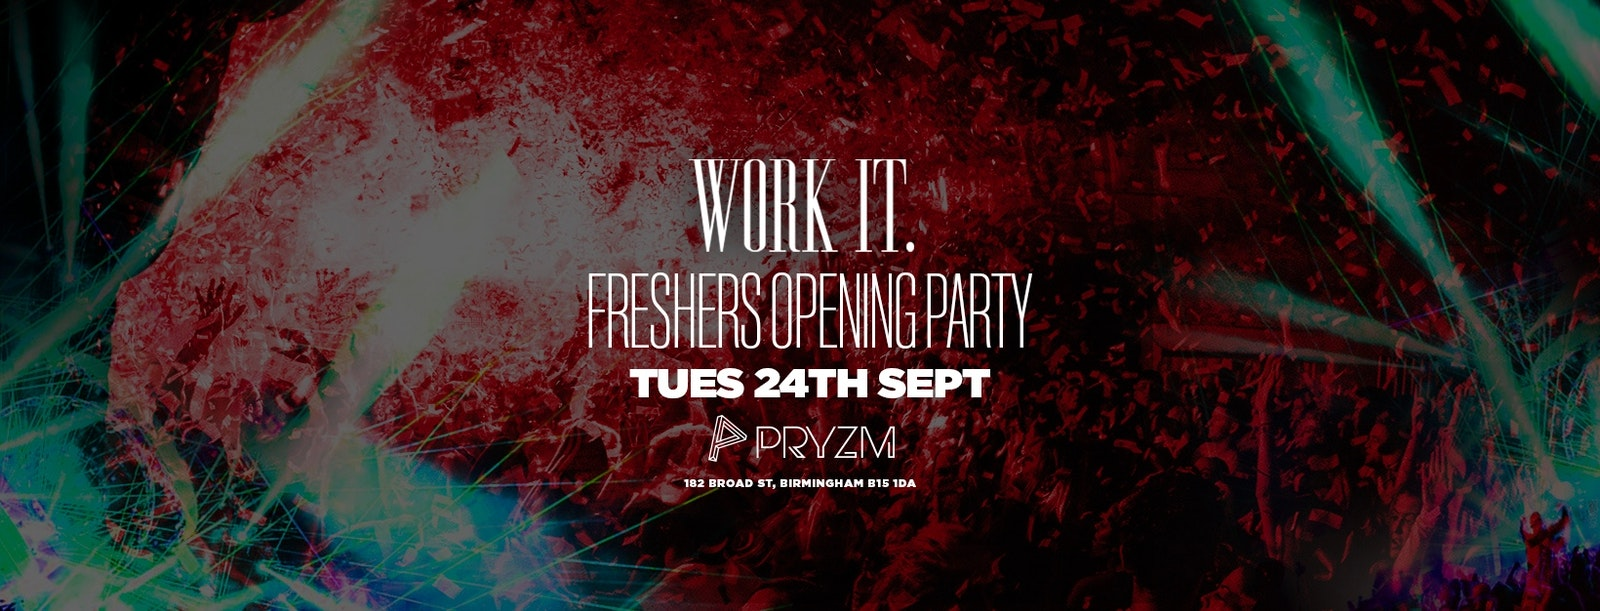 Work It. – Birmingham Freshers Opening Party